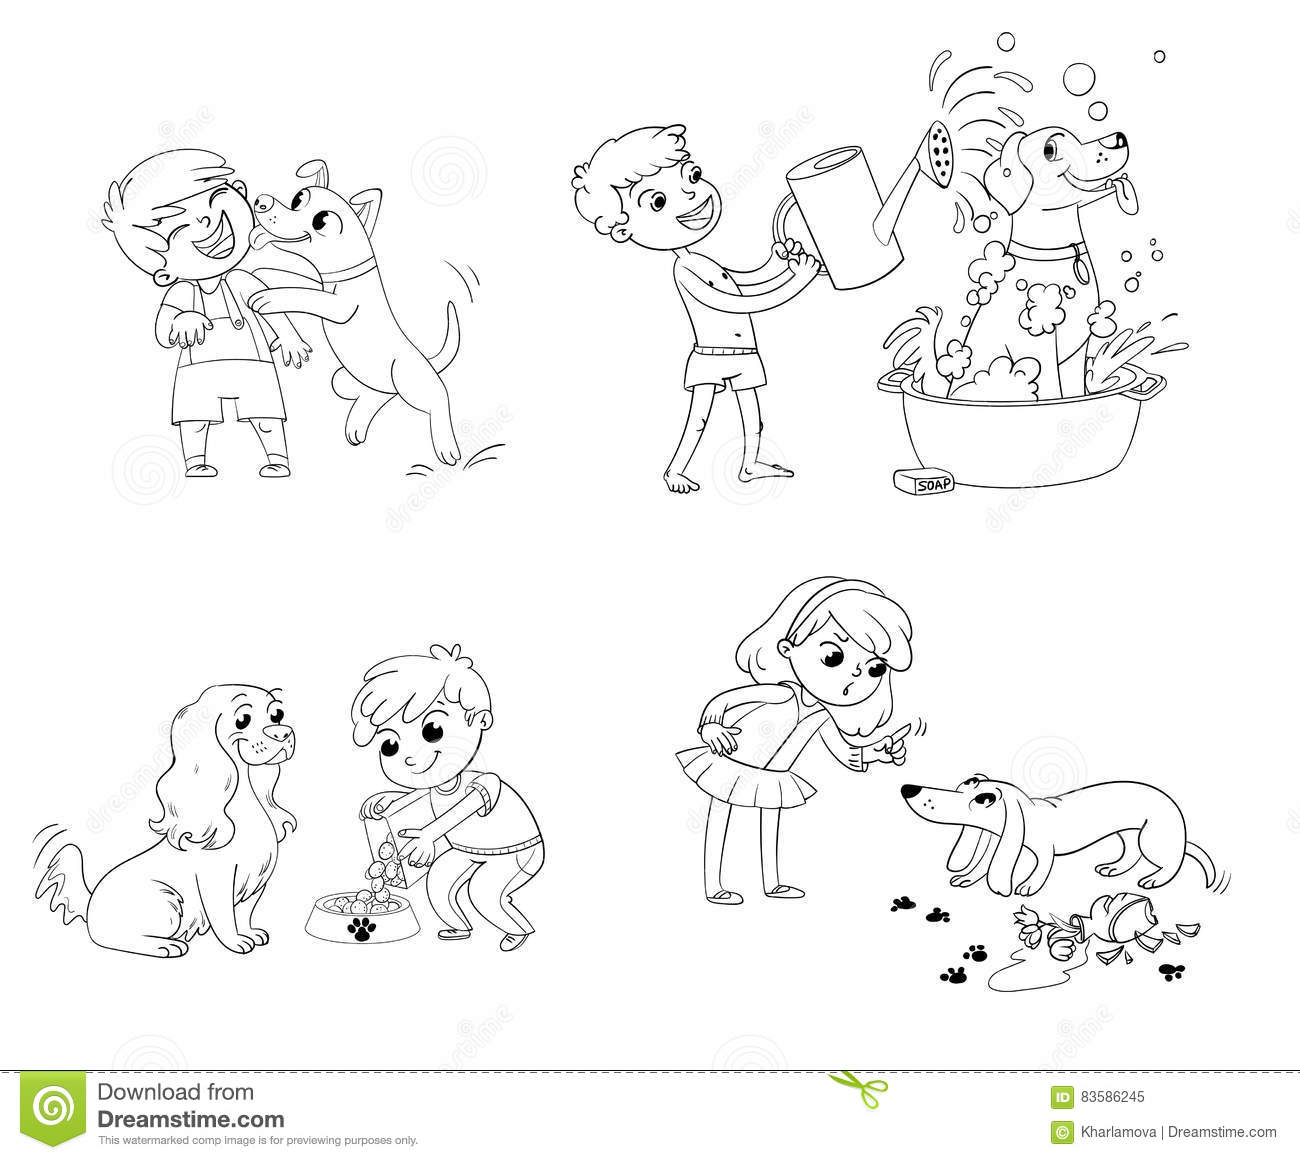 Russell Cartoons Illustrations Amp Vector Stock Images